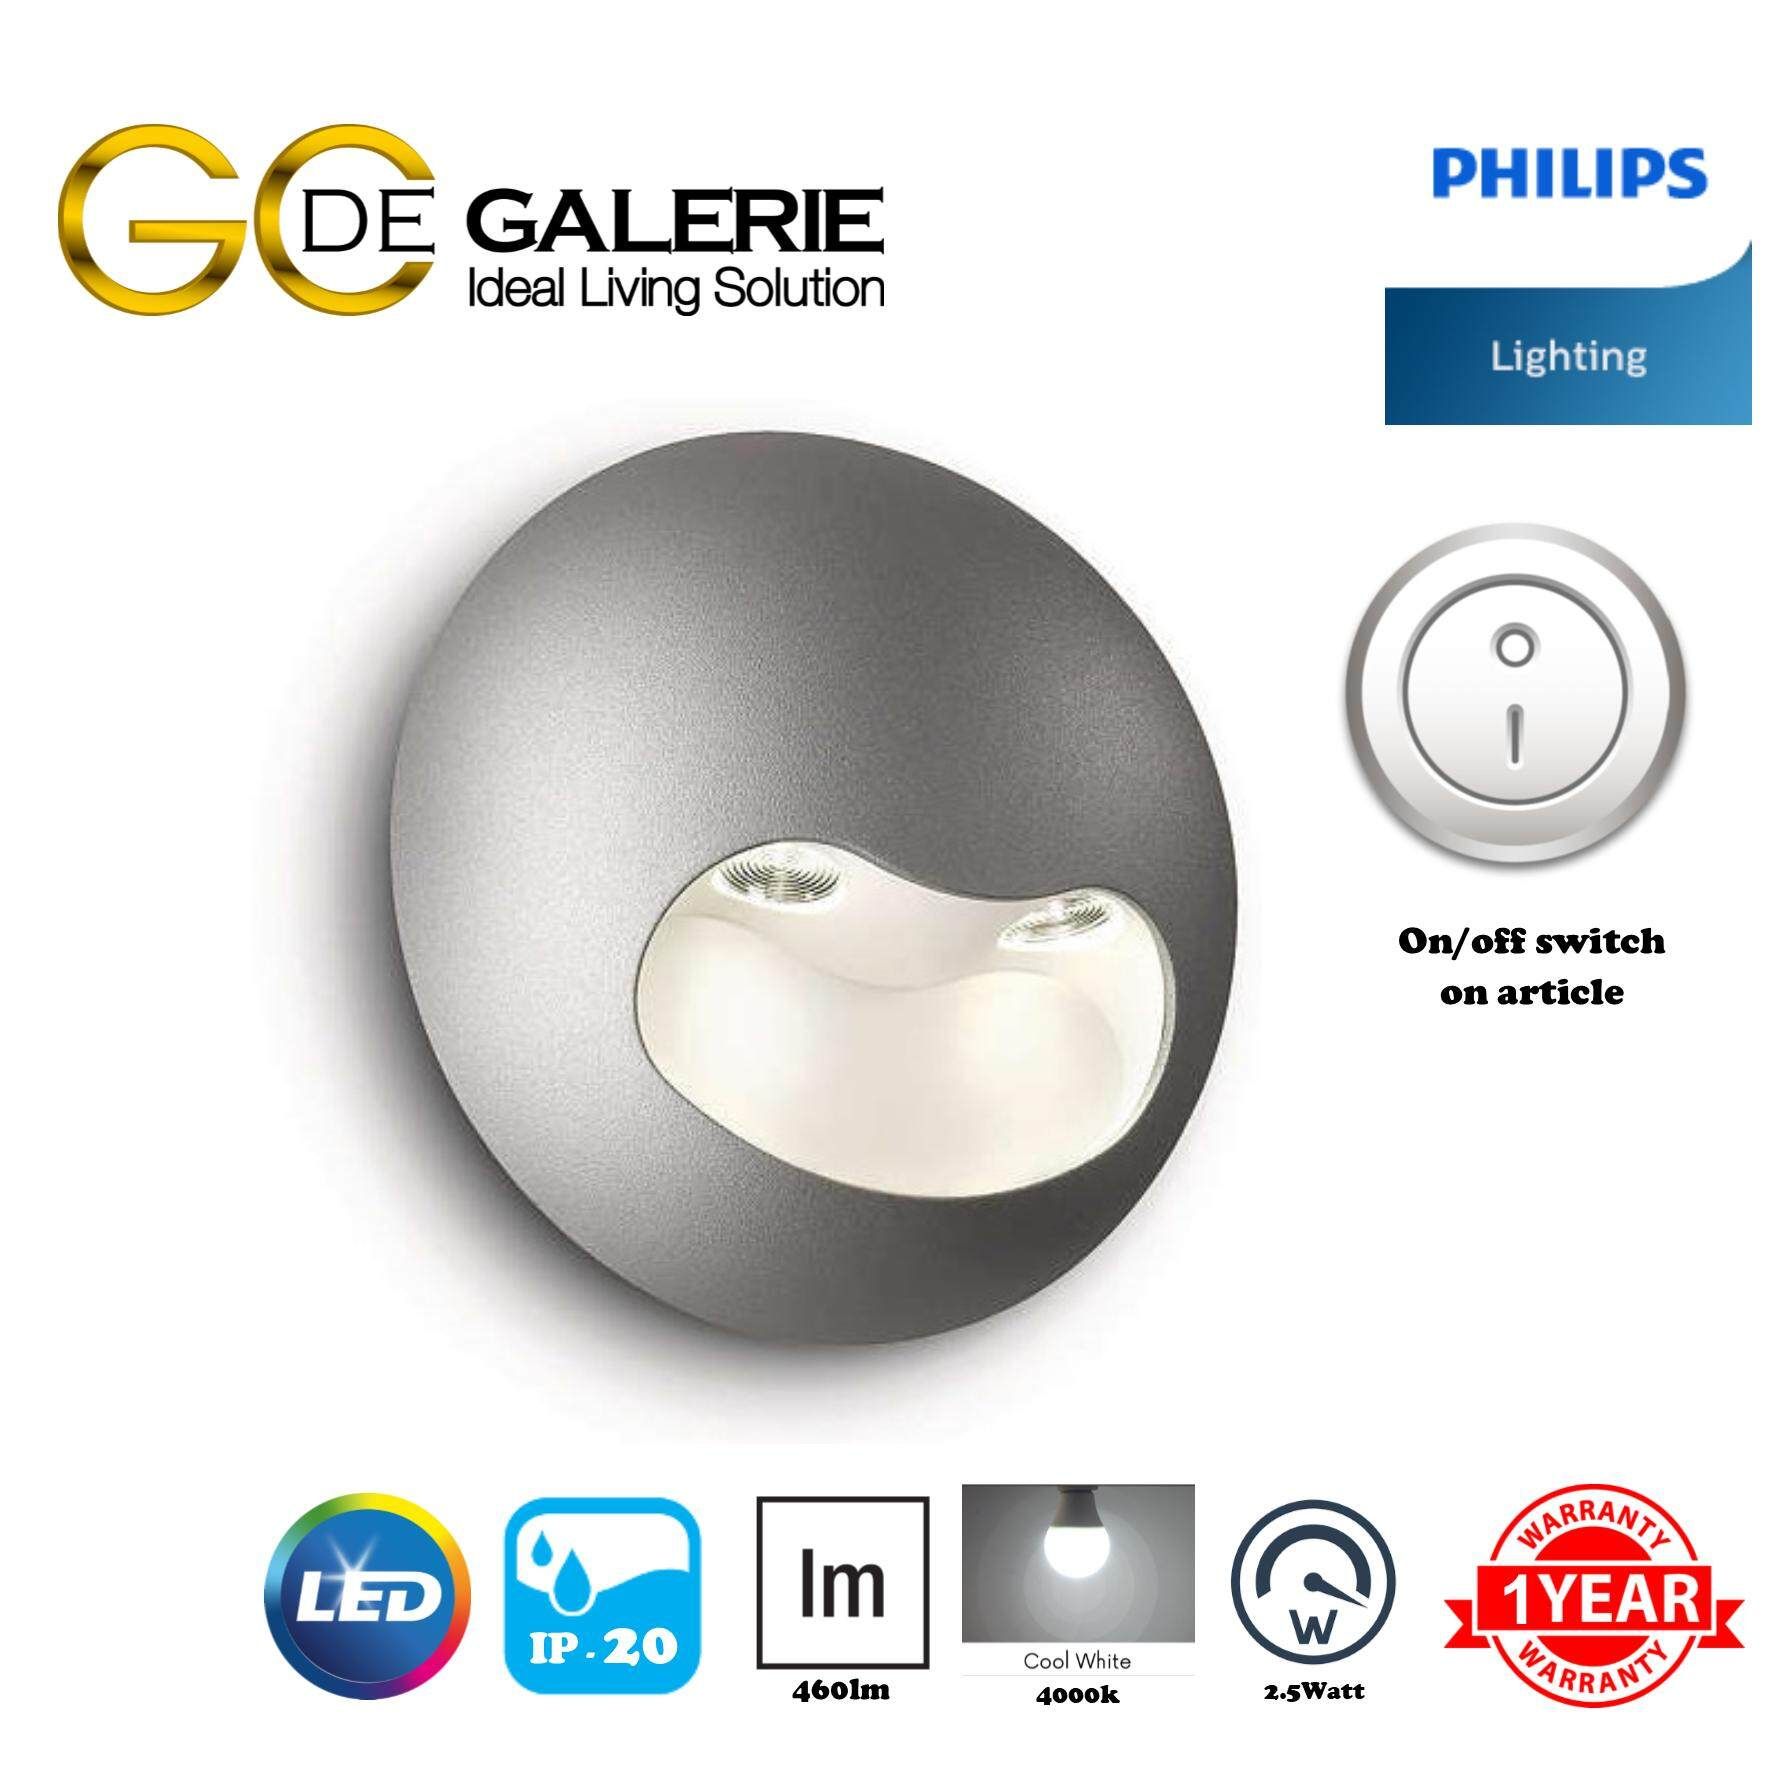 WALL LIGHT PHILIPS  LEDINO GEN2 69085/87 40K GY